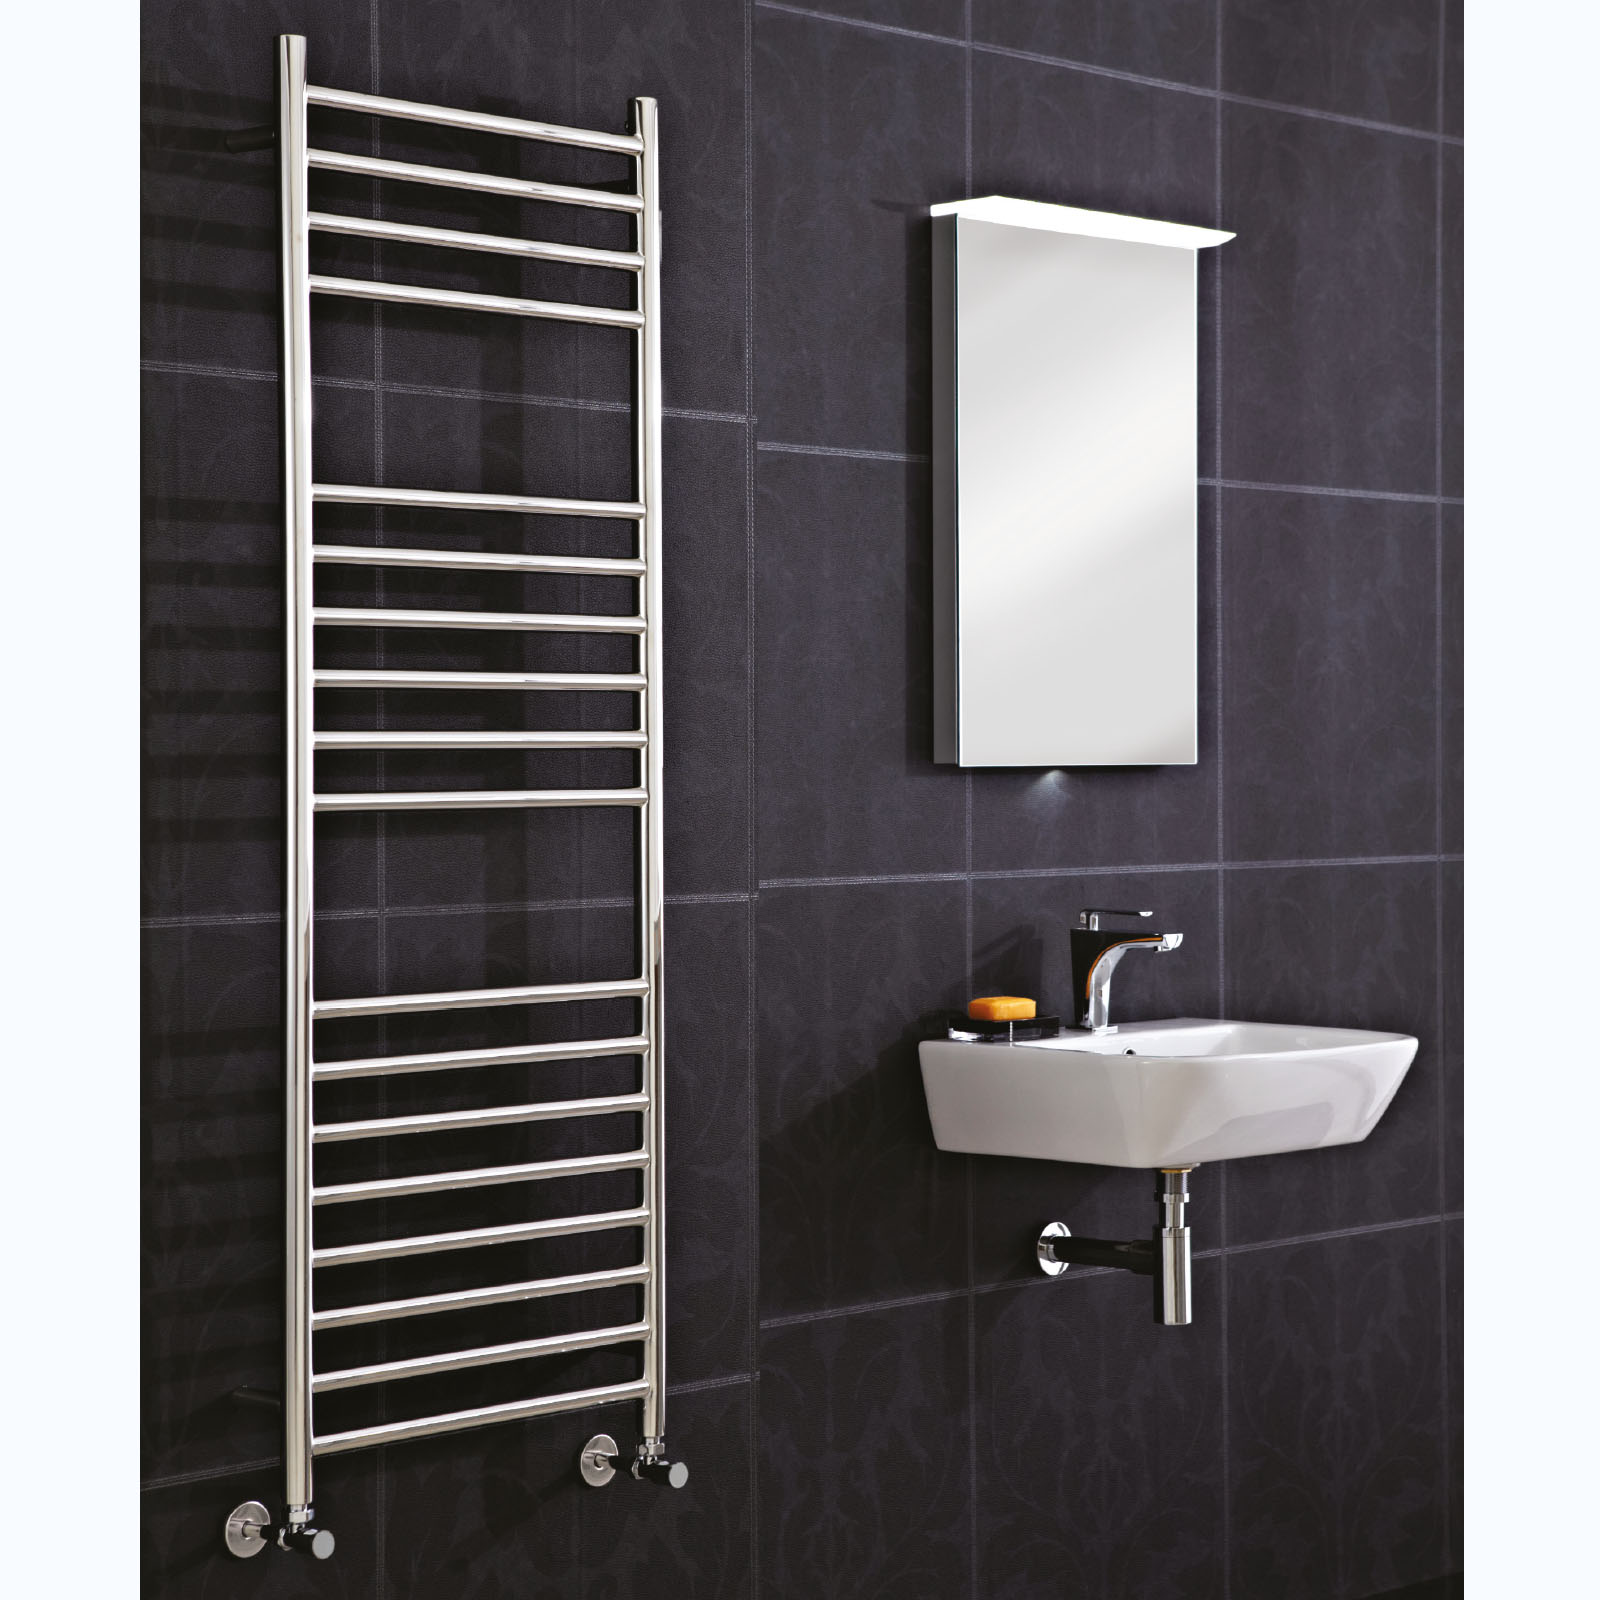 Radiator Towel Rails Bathrooms. Phoenix Athena Stainless Steel Towel Rail